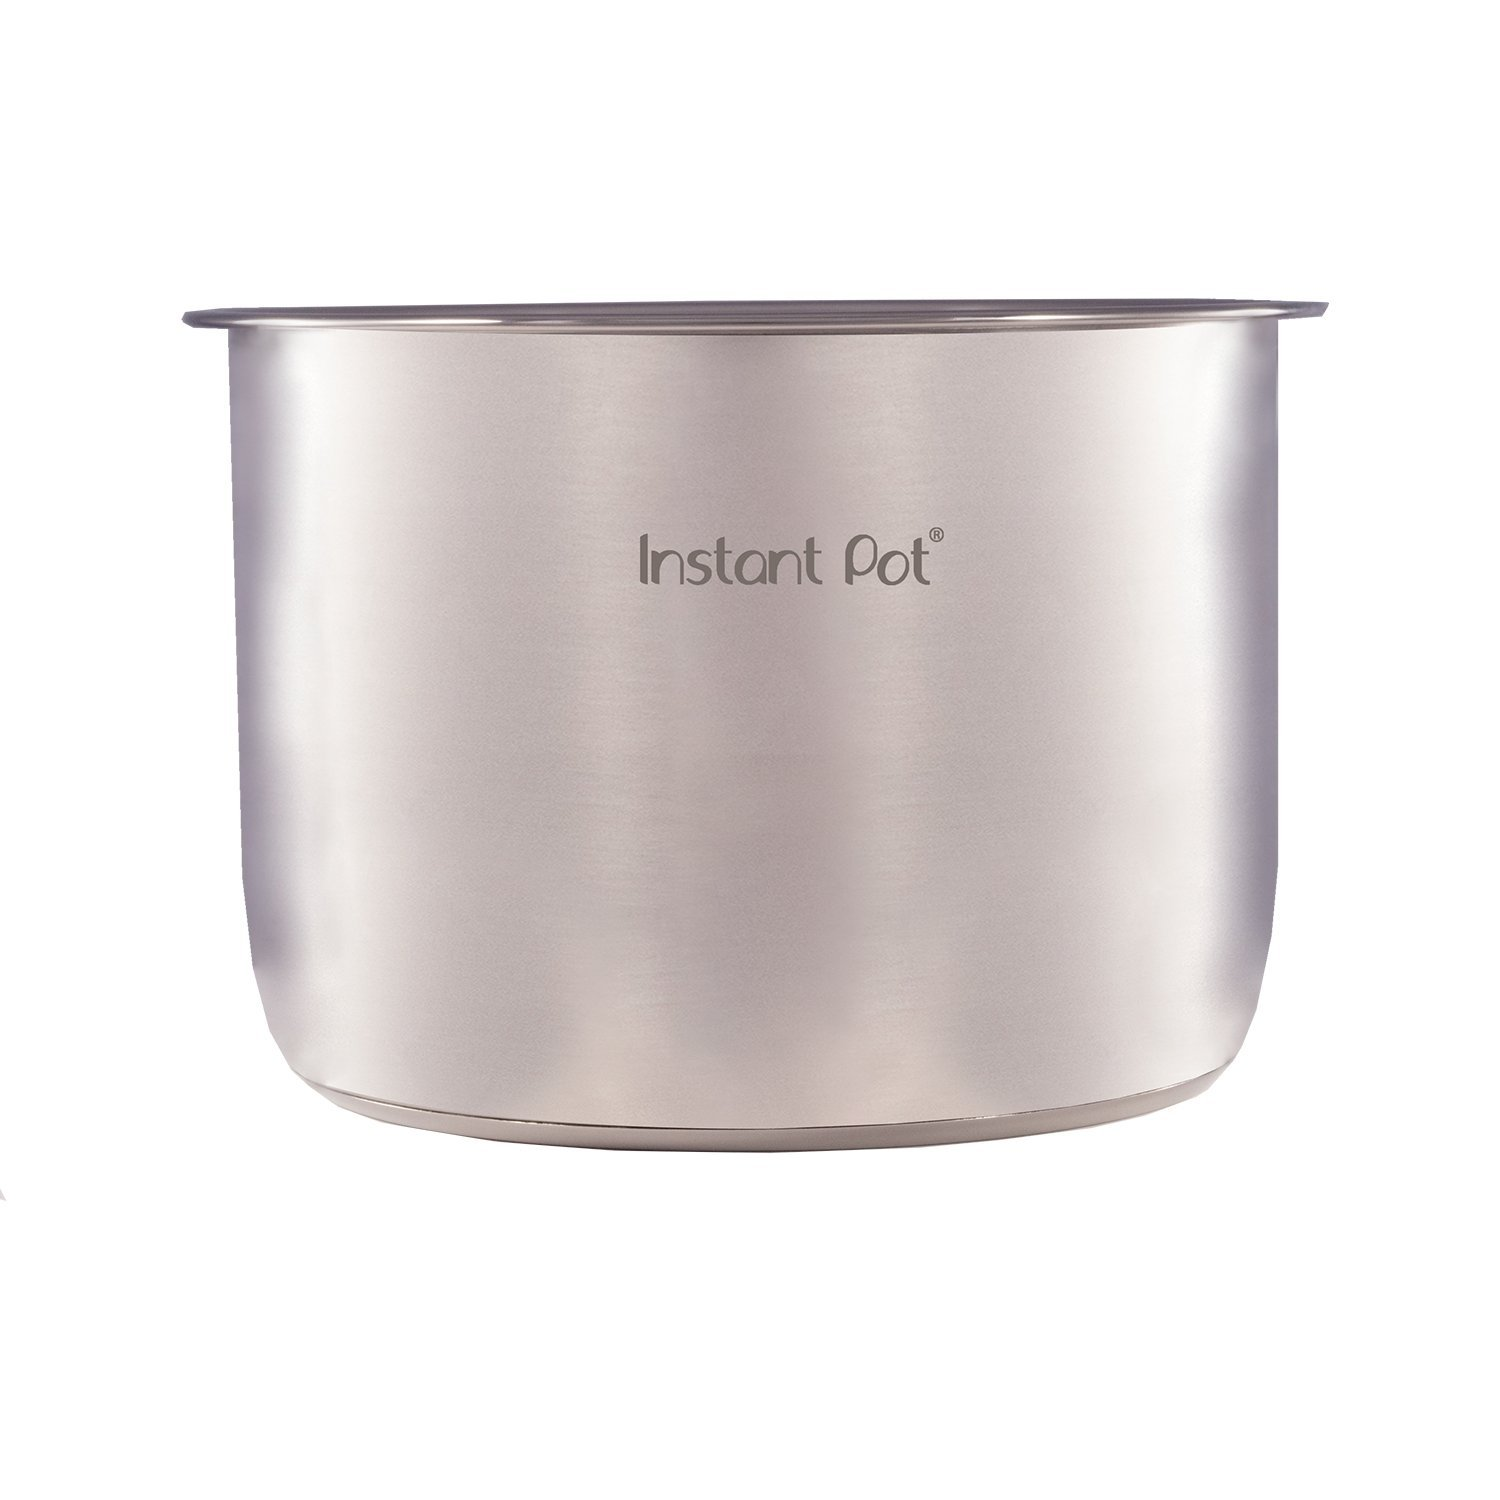 Genuine Instant Pot Stainless Steel Inner Cooking Pot - 8 Quart - Gnstant Pot stainless steel inner cooking pot, food grade 304 (18/8), no chemical coating